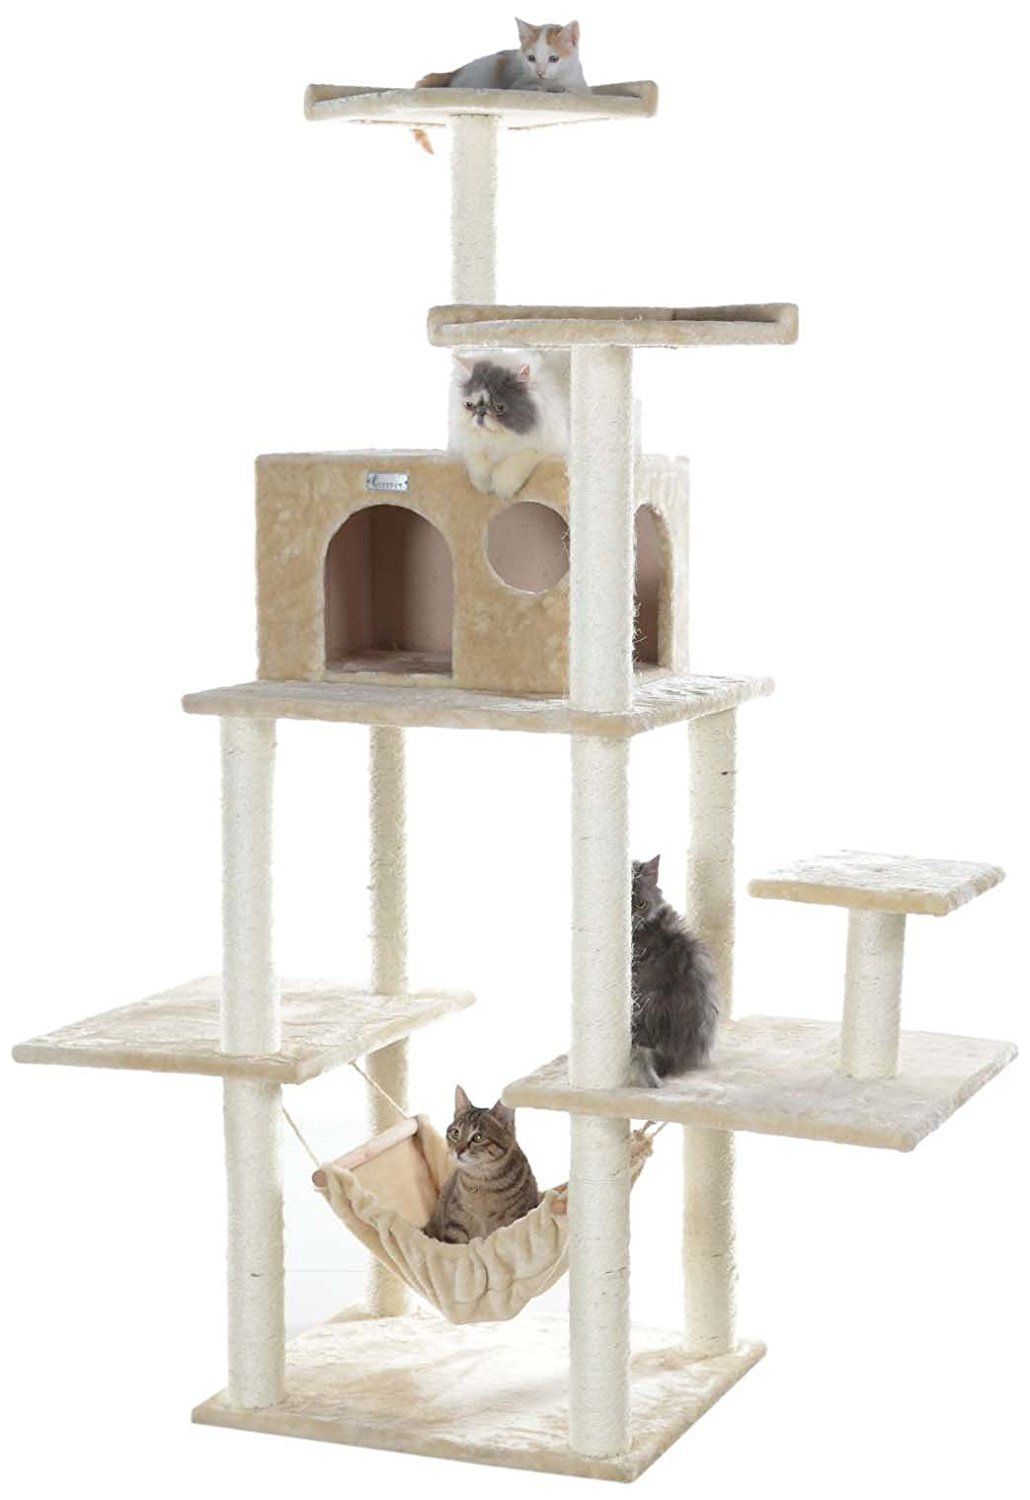 gleepet cat tower condo is covered with beige faux fur  gleepet u0027s 68 inch cat tower features a cat condo hammock multiple levels and 2 high cat perches  gleecat 68 in  5 level cat tree with hammock   insider u0027s special      rh   pinterest